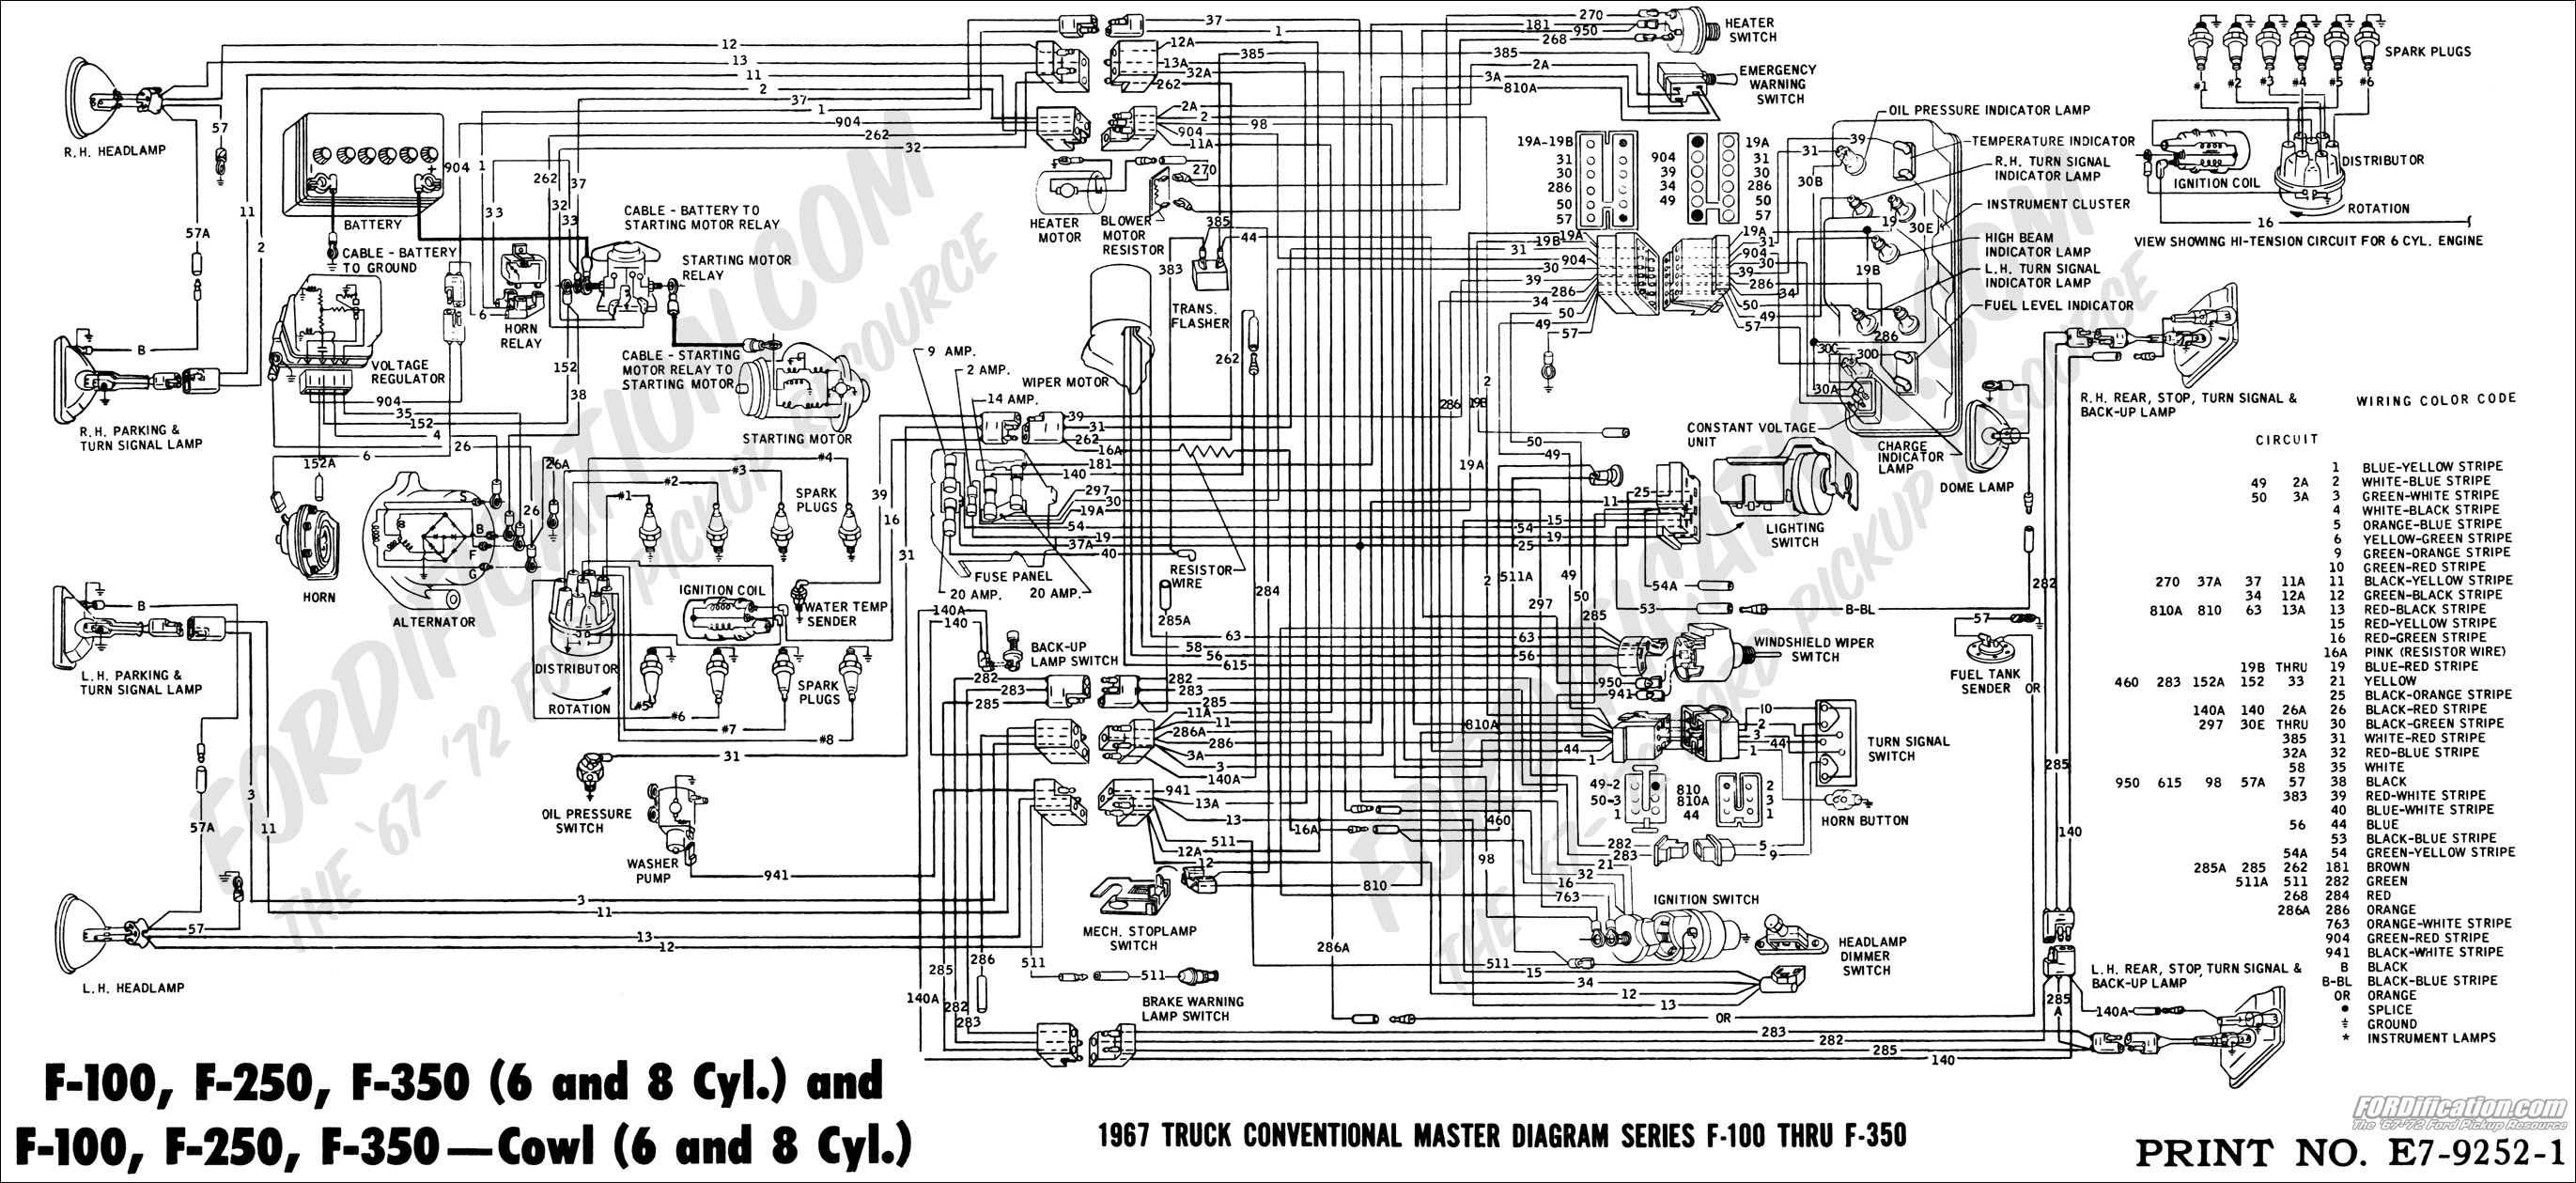 Ford F150 Wiring Harness Wiring Diagram Schematics 1996 Ford F150 Fuel  System Diagram 1996 Ford F 150 302 Wiring Diagram